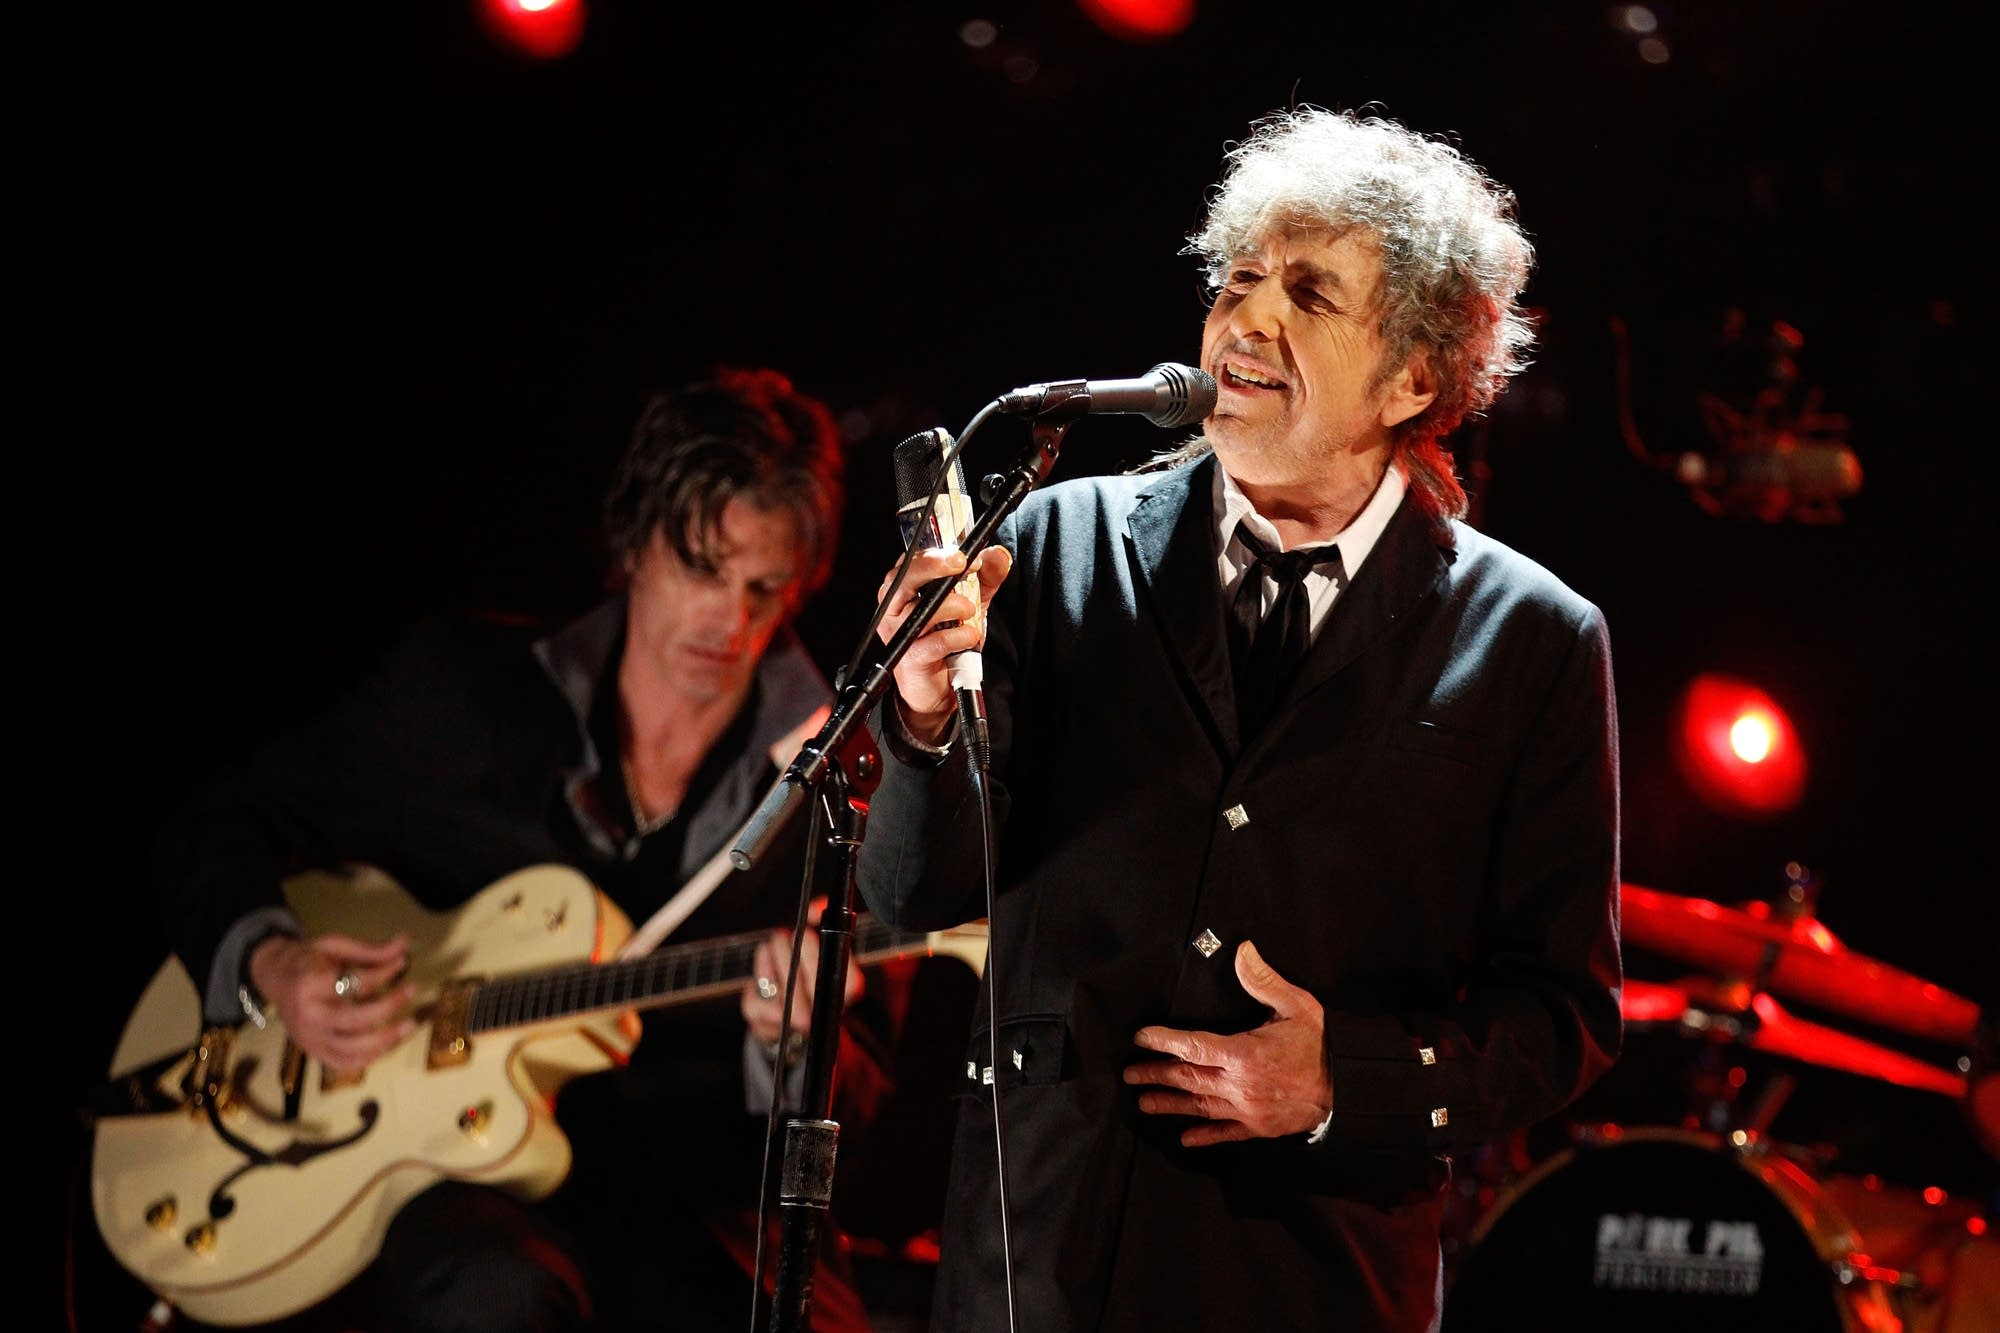 Bob Dylan performing onstage